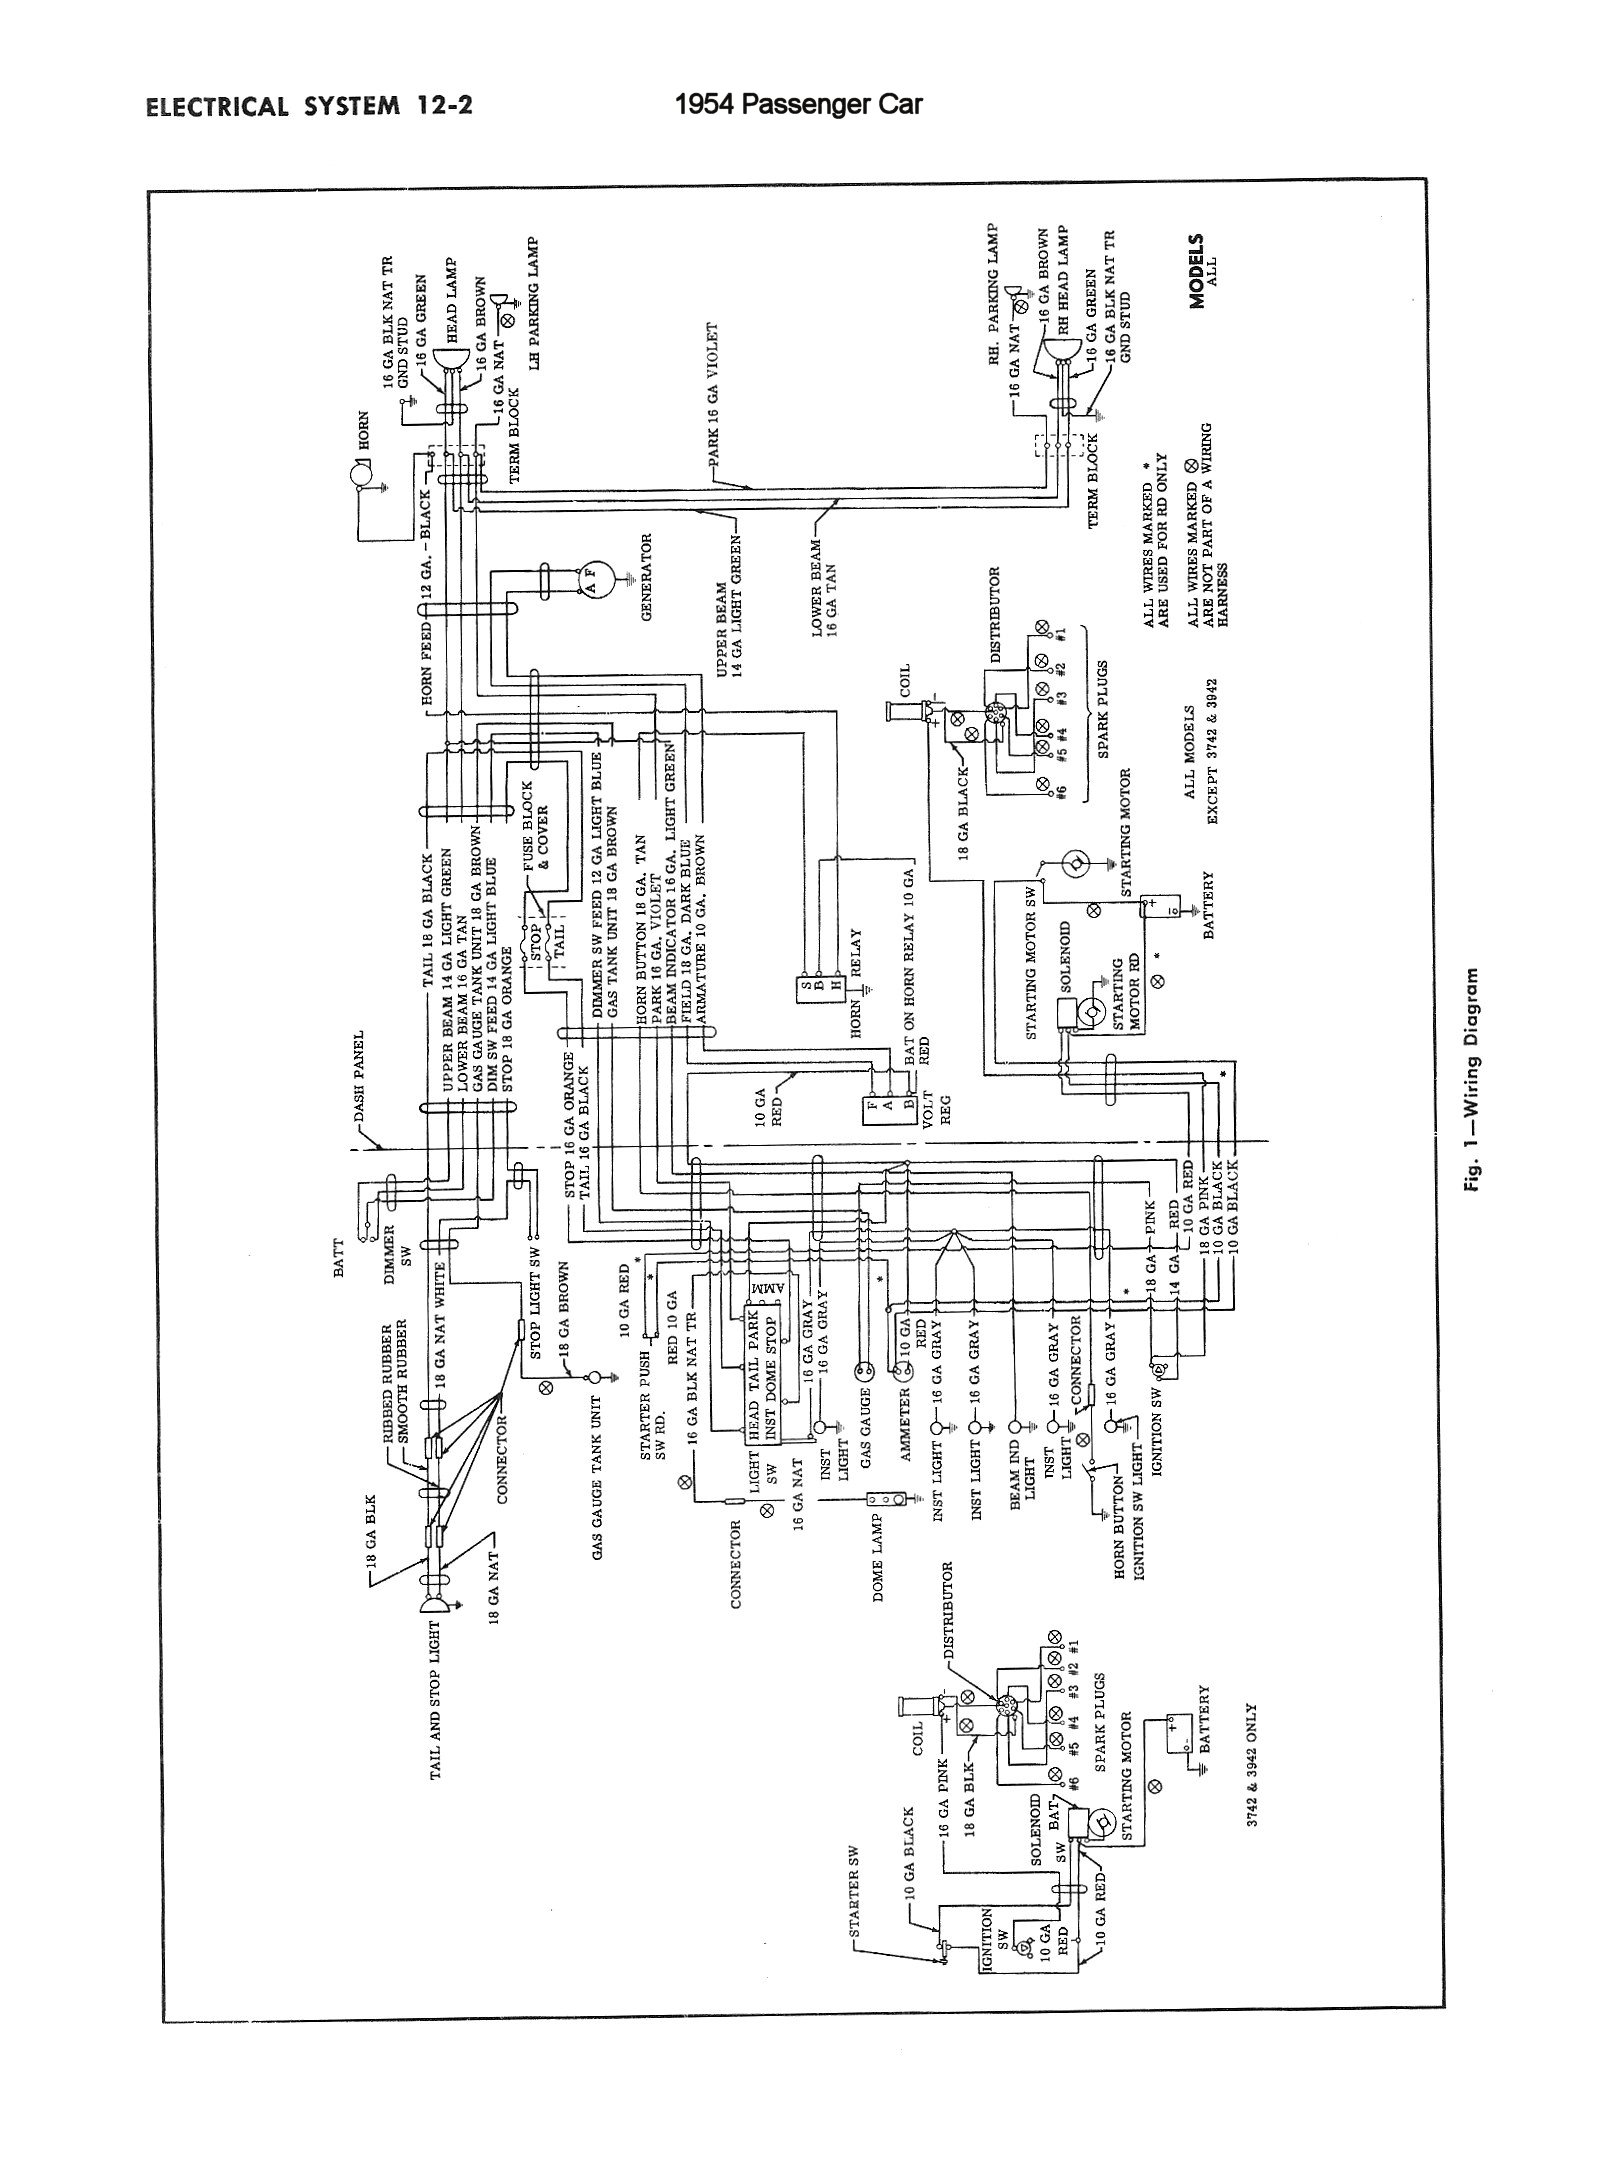 1946 plymouth fuel gauge wiring diagram